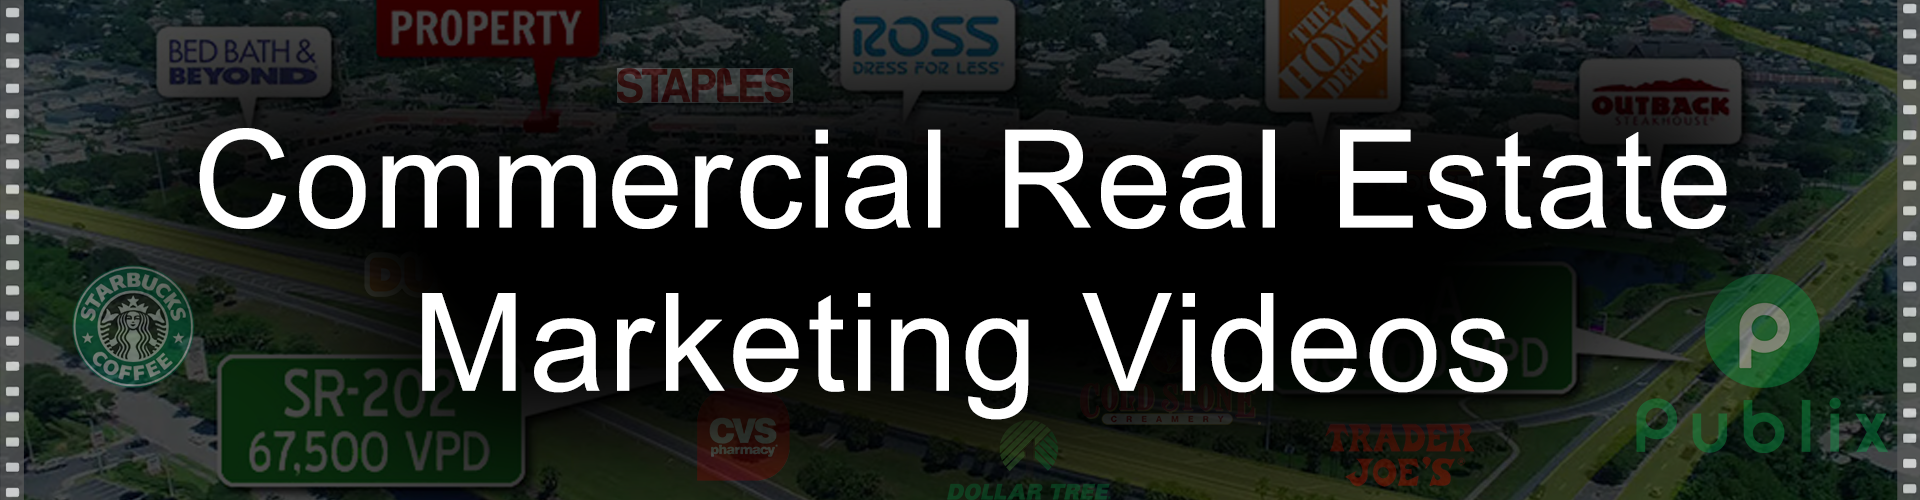 Commercial Real Estate Marketing Videos